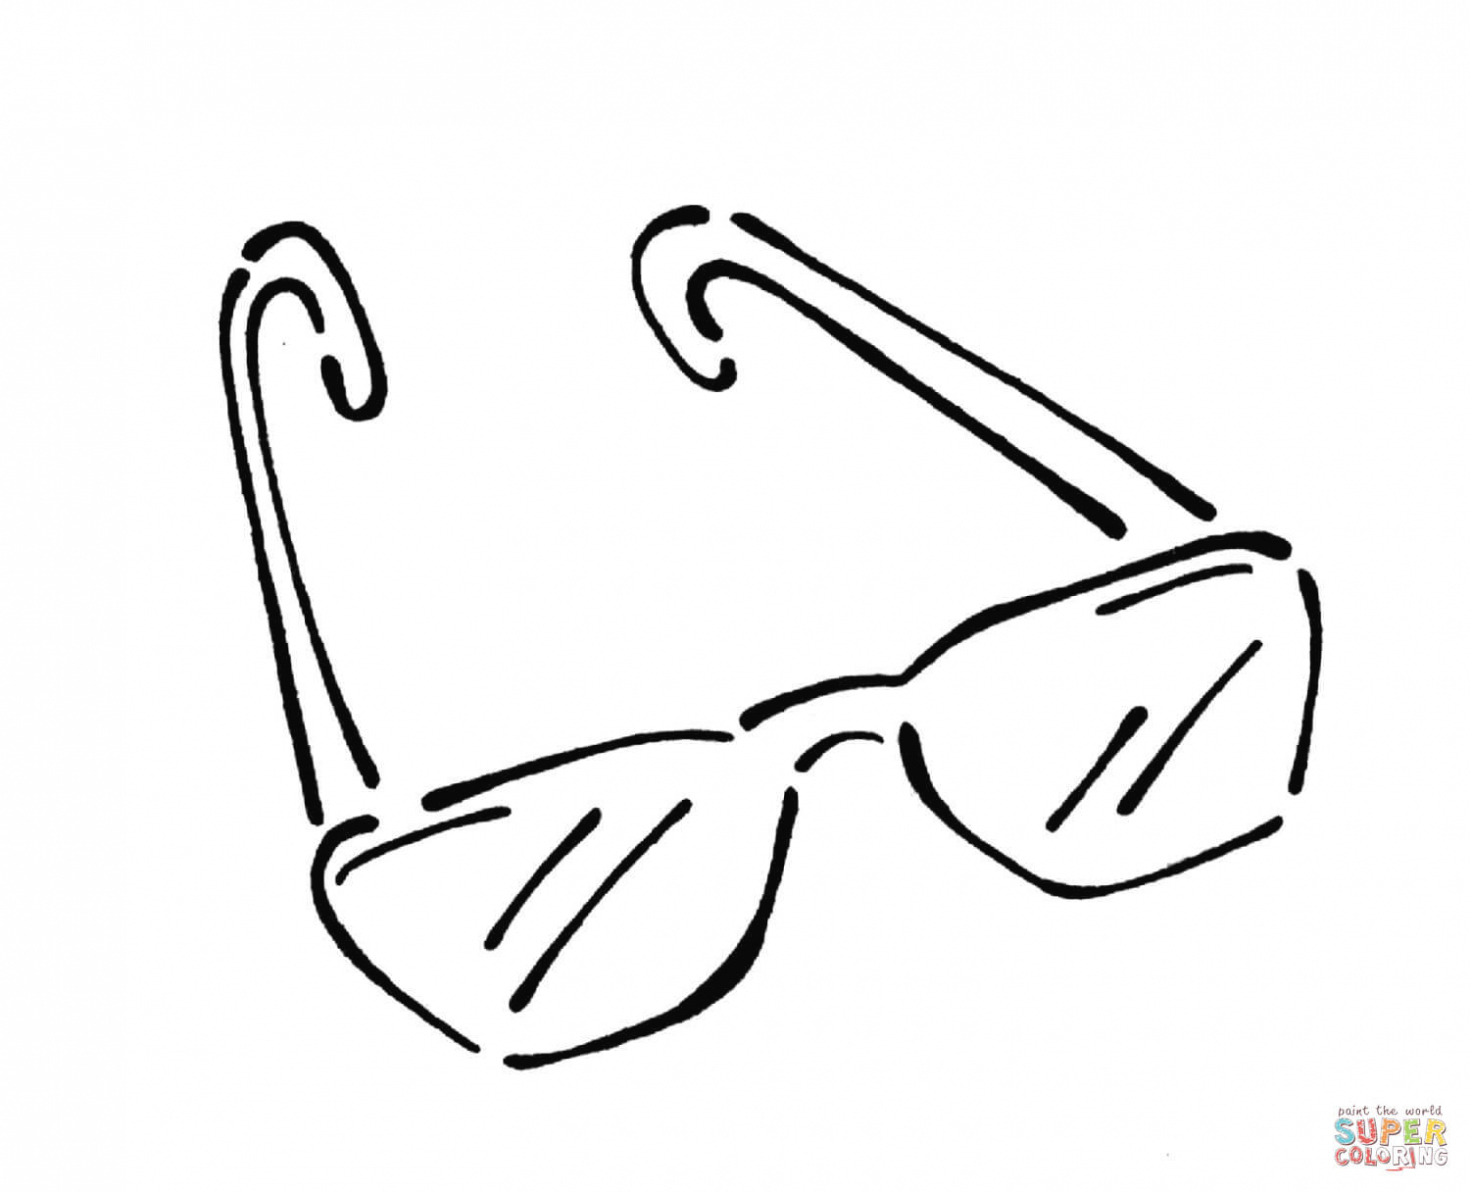 pineapple with sunglasses coloring page pineapple coloring page pineapple pics coloring sheets sunglasses coloring page with pineapple